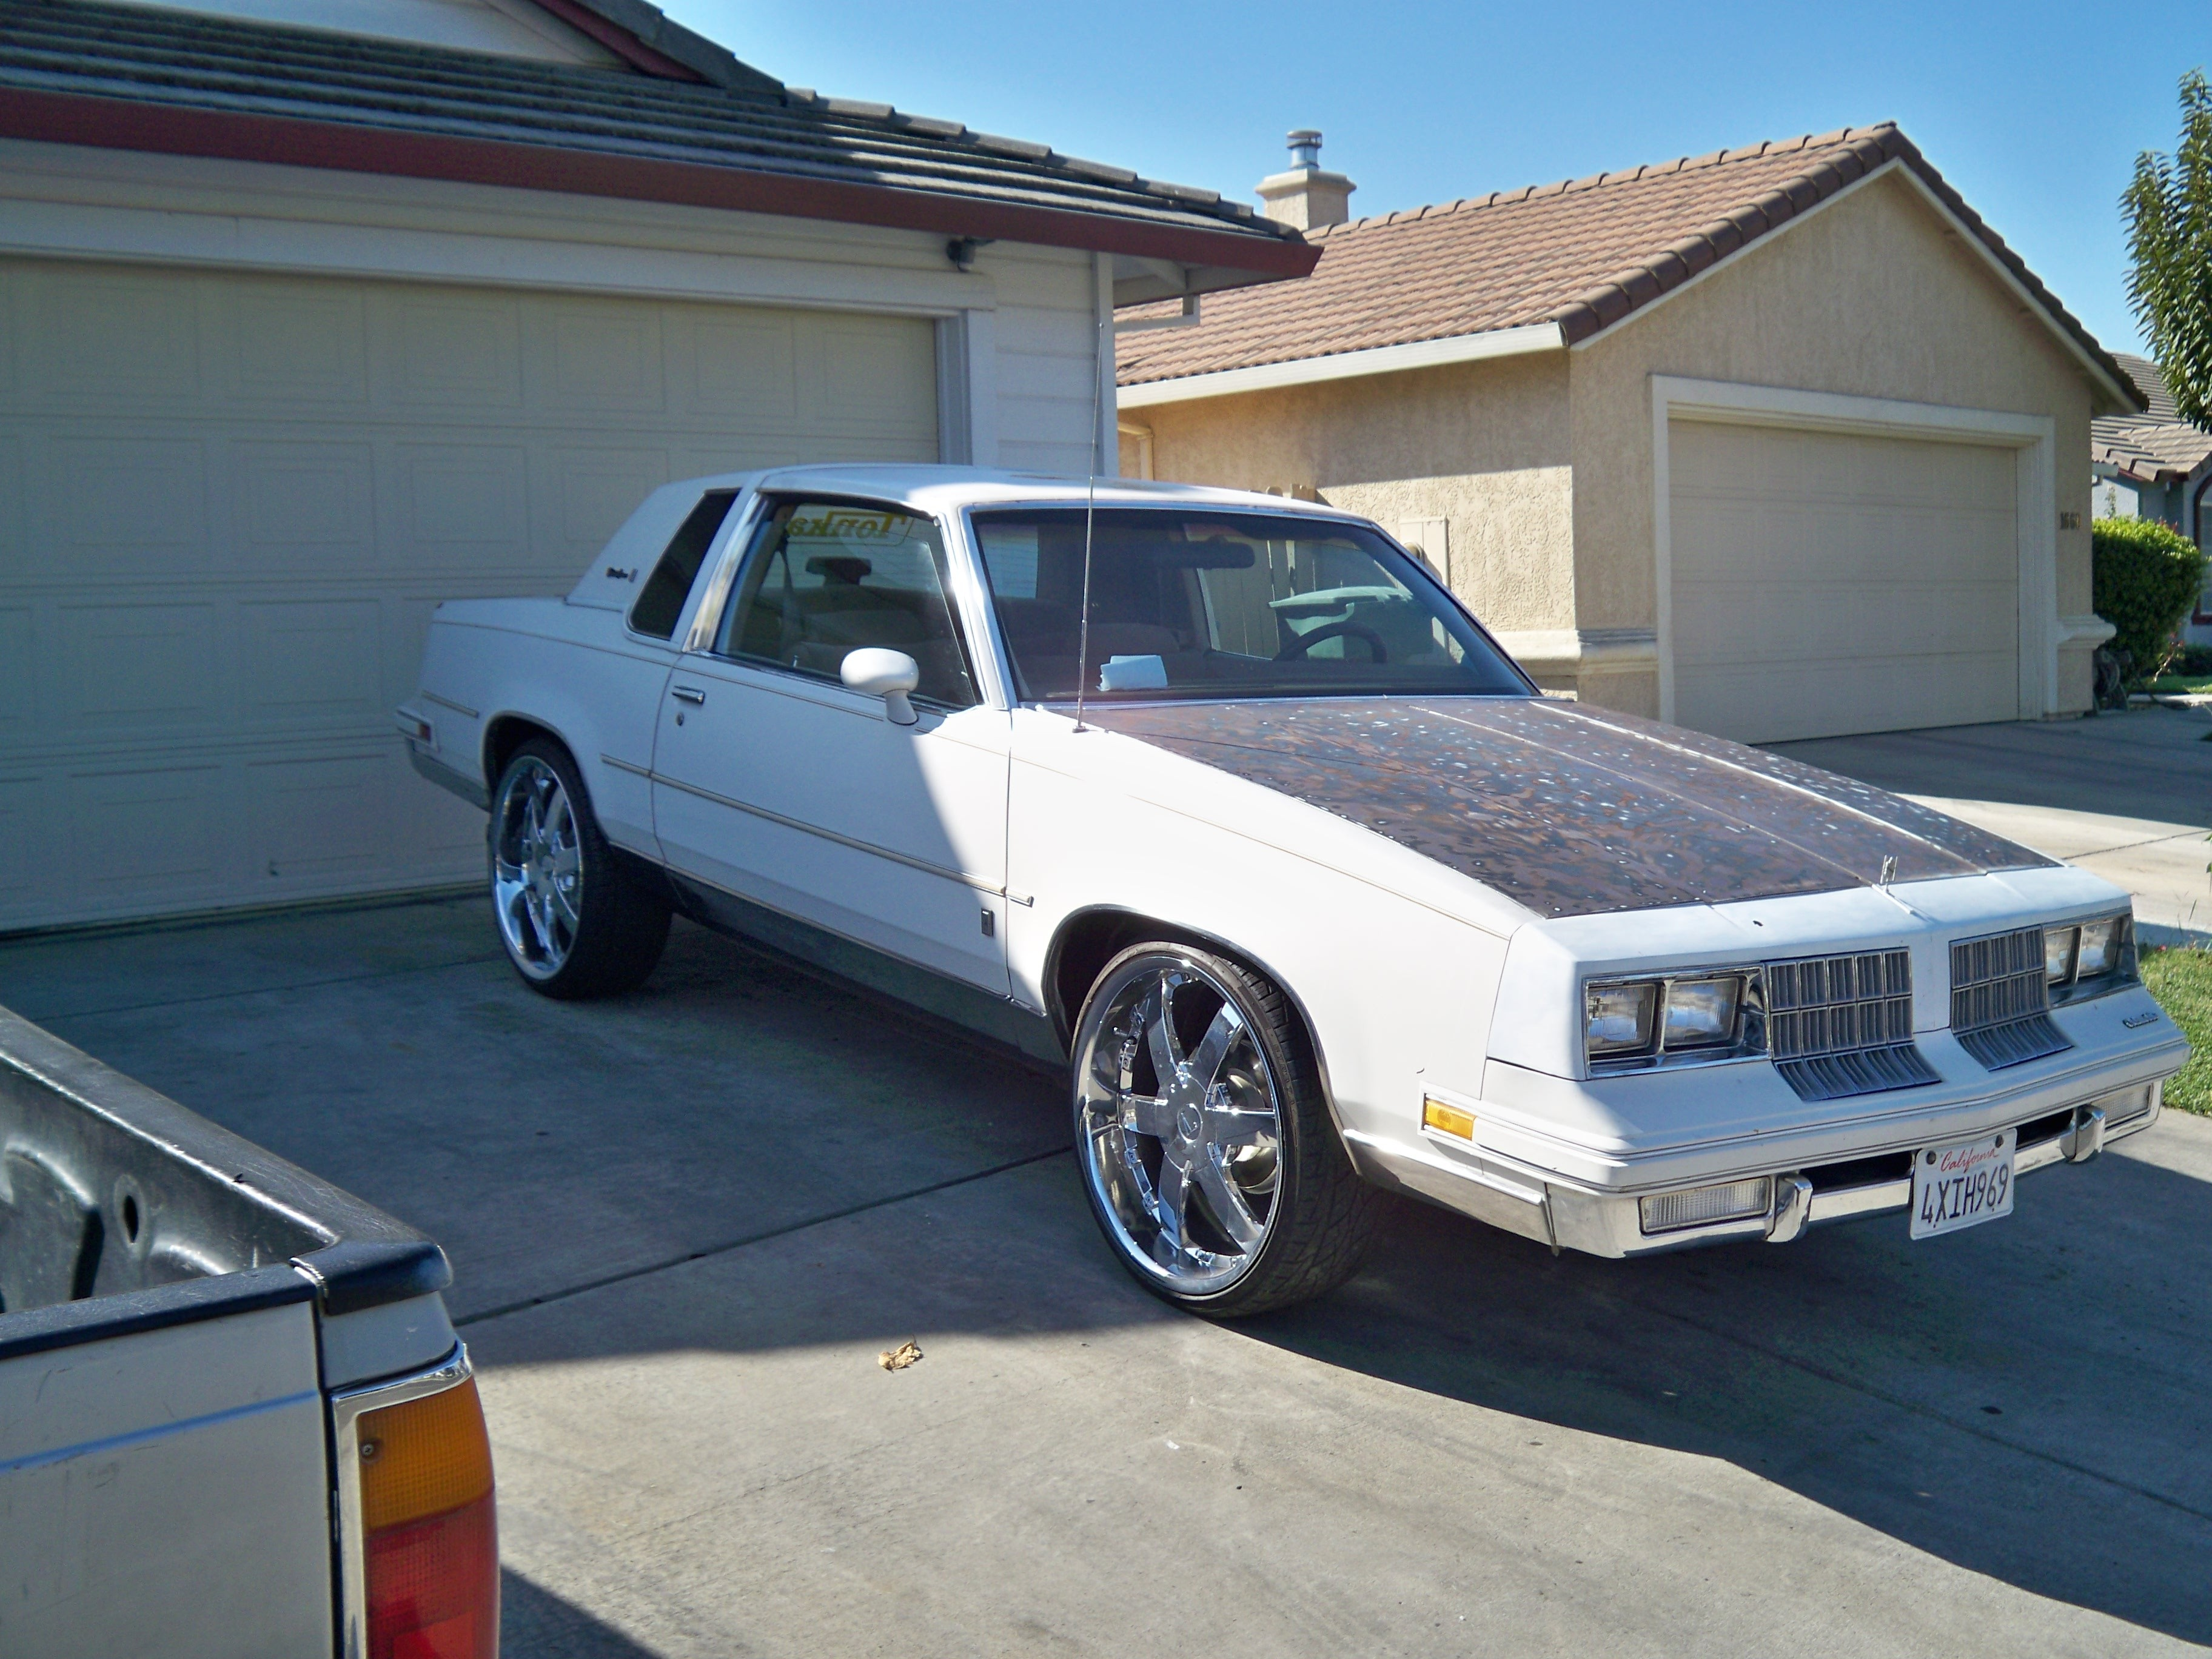 fugisolo's 1986 Oldsmobile Cutlass Supreme